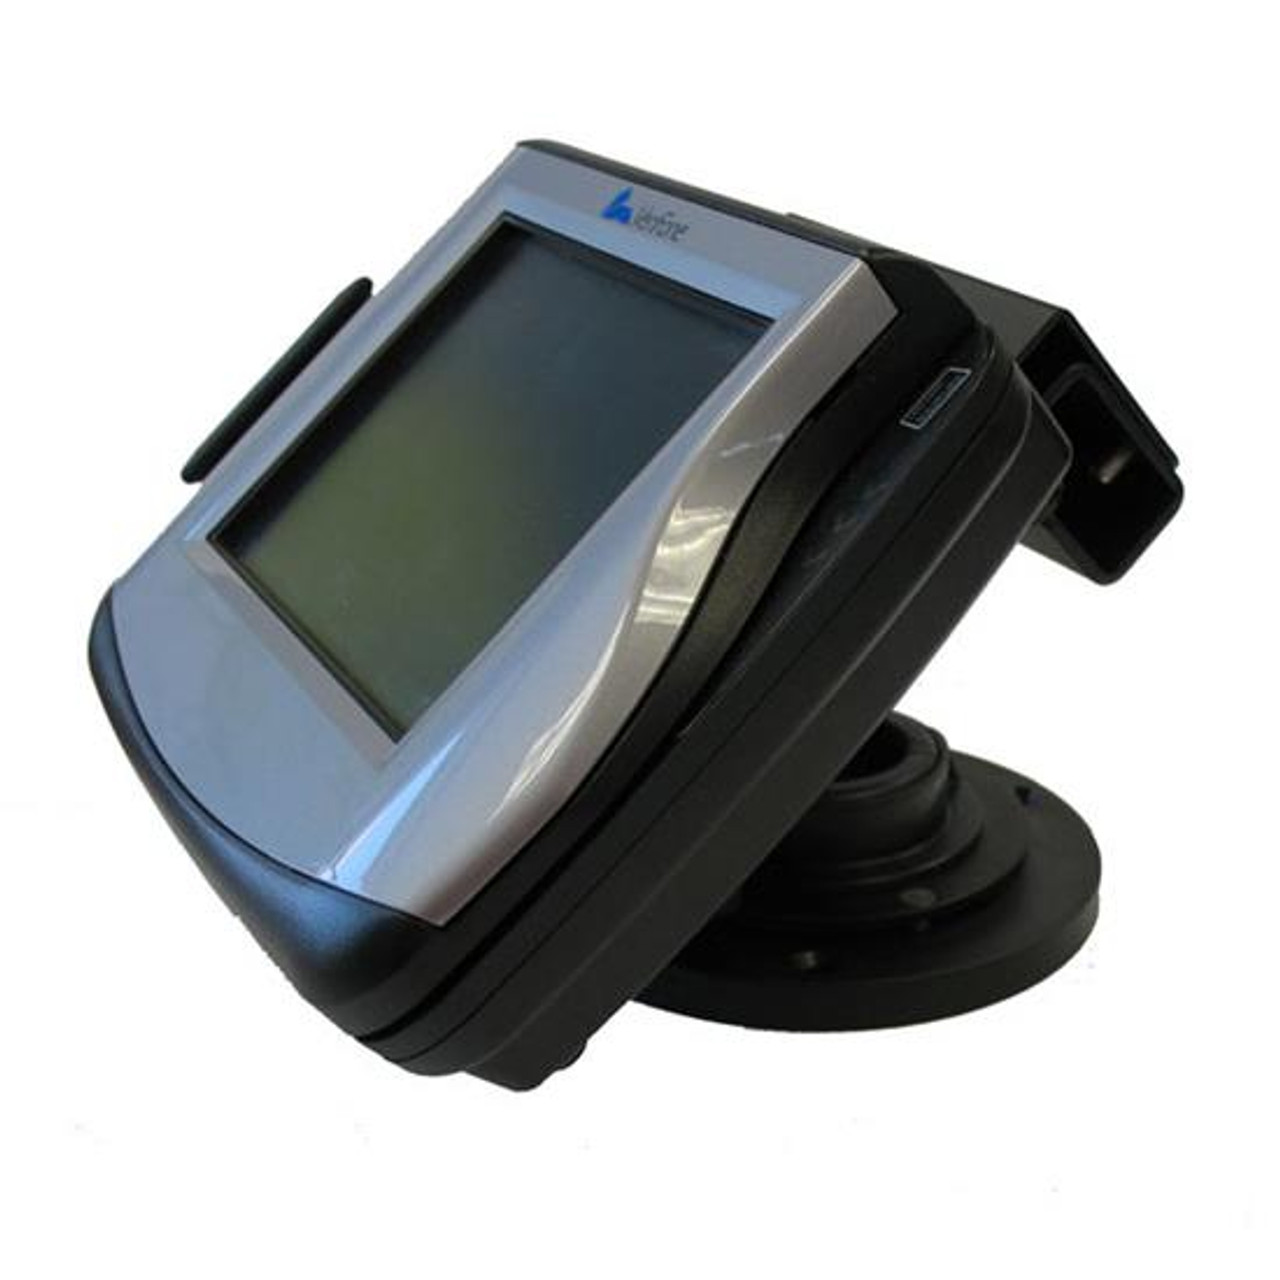 Verifone MX830 Credit Card Stand Locking Low Profile by Swivel Stands